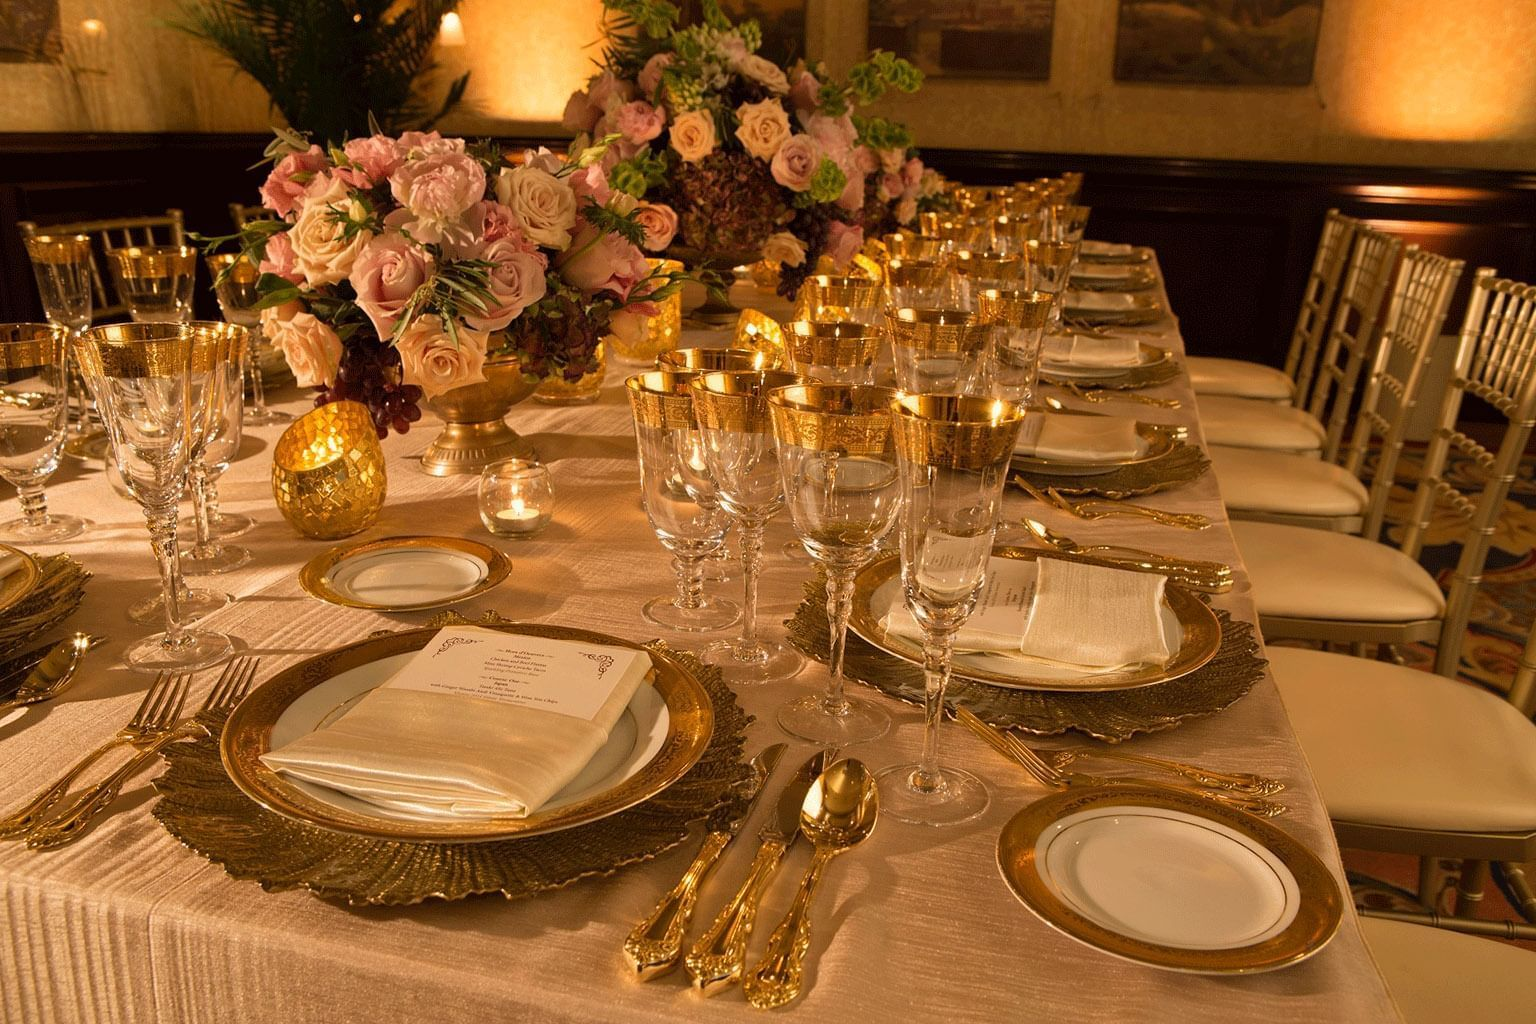 table decorated with gold place settings and roses